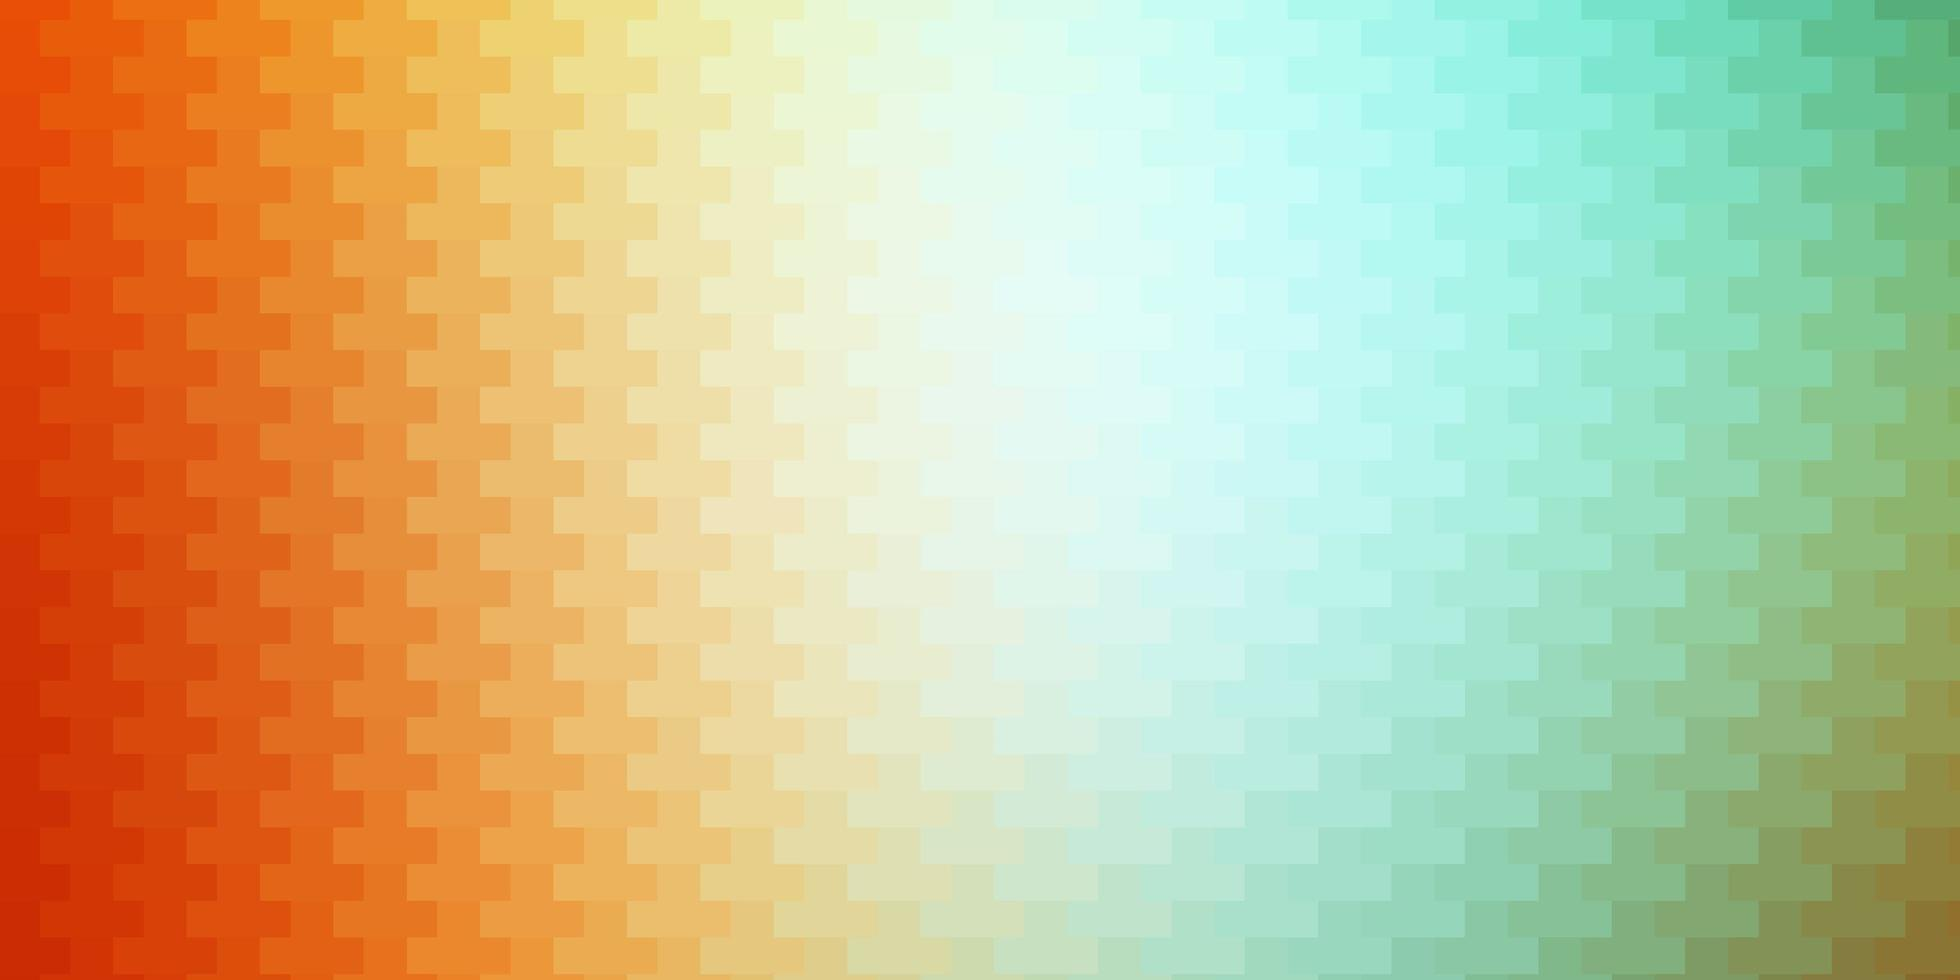 Light Green, Yellow vector background with rectangles.